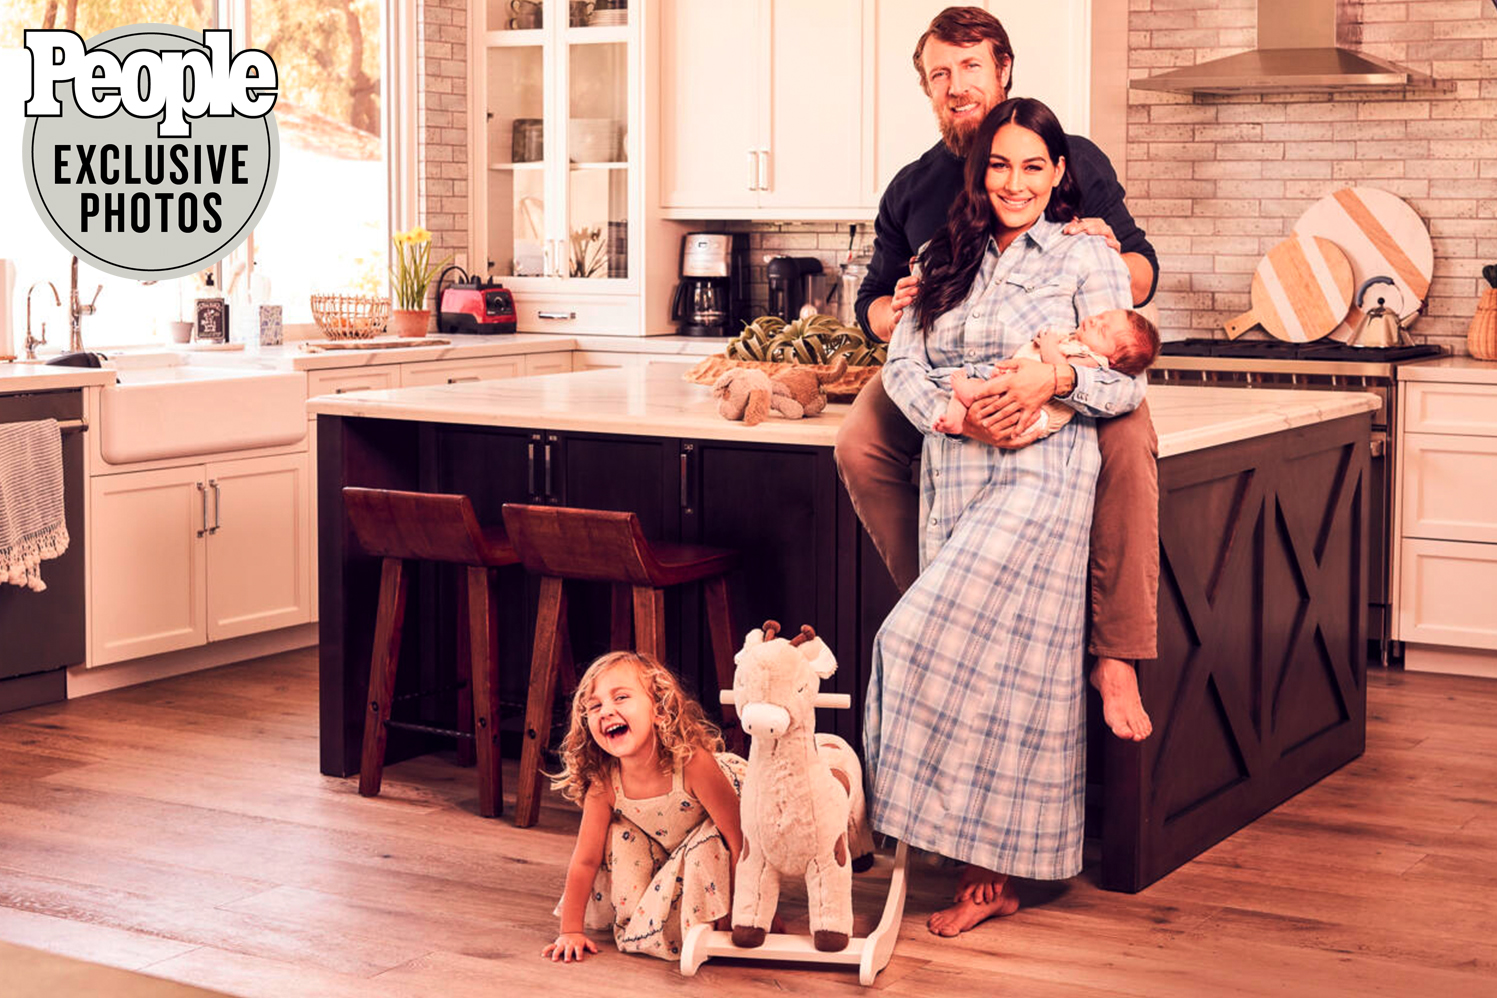 brie bella and her family